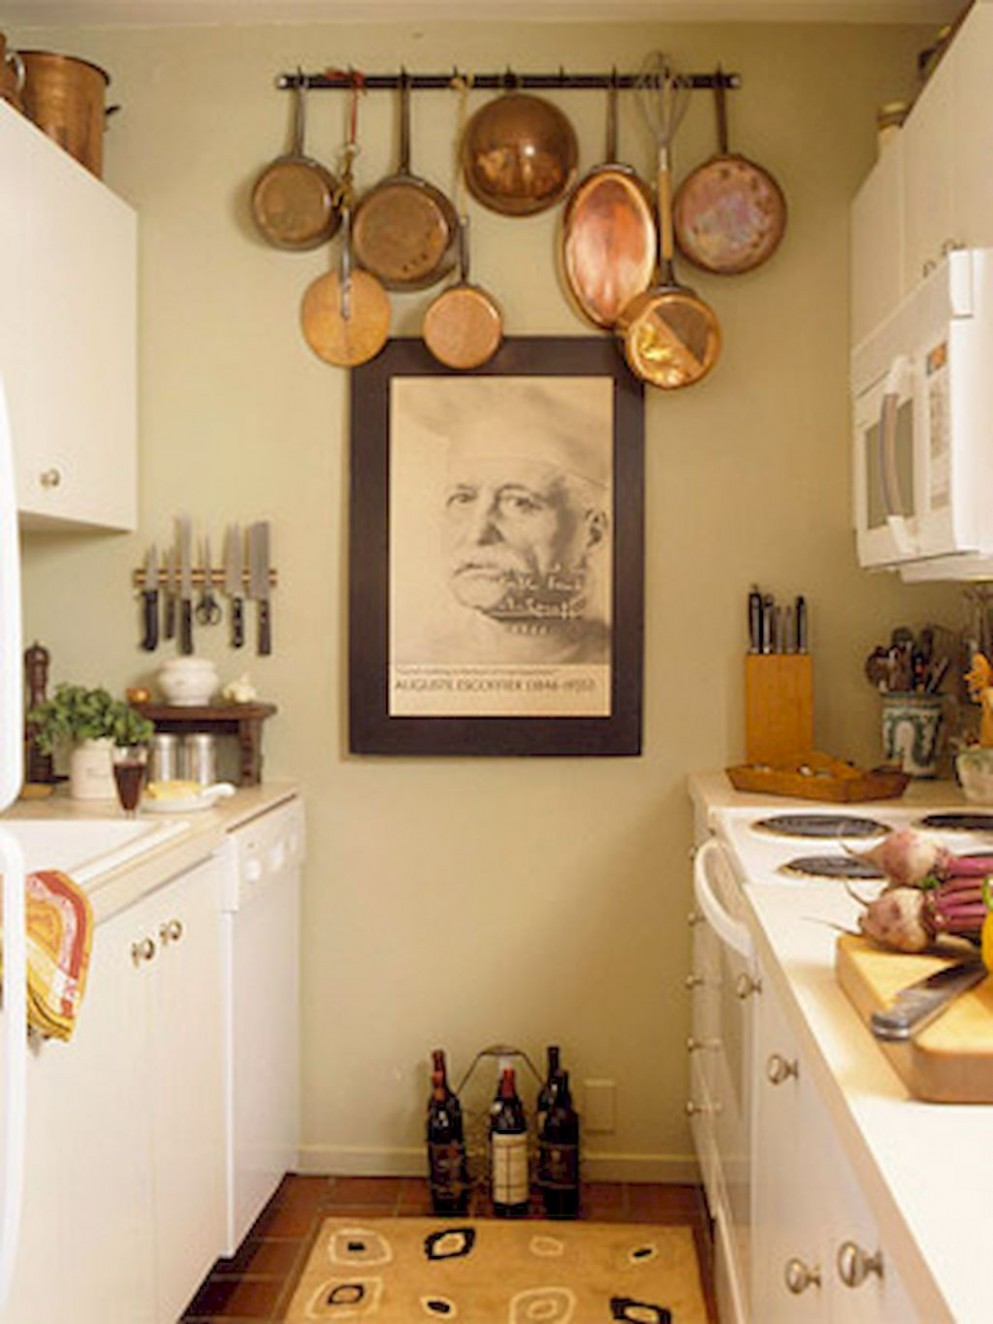 Nice 10 Simply Apartment Kitchen Decorating Ideas on A Budget  - Apartment Kitchen Decorating Ideas On A Budget